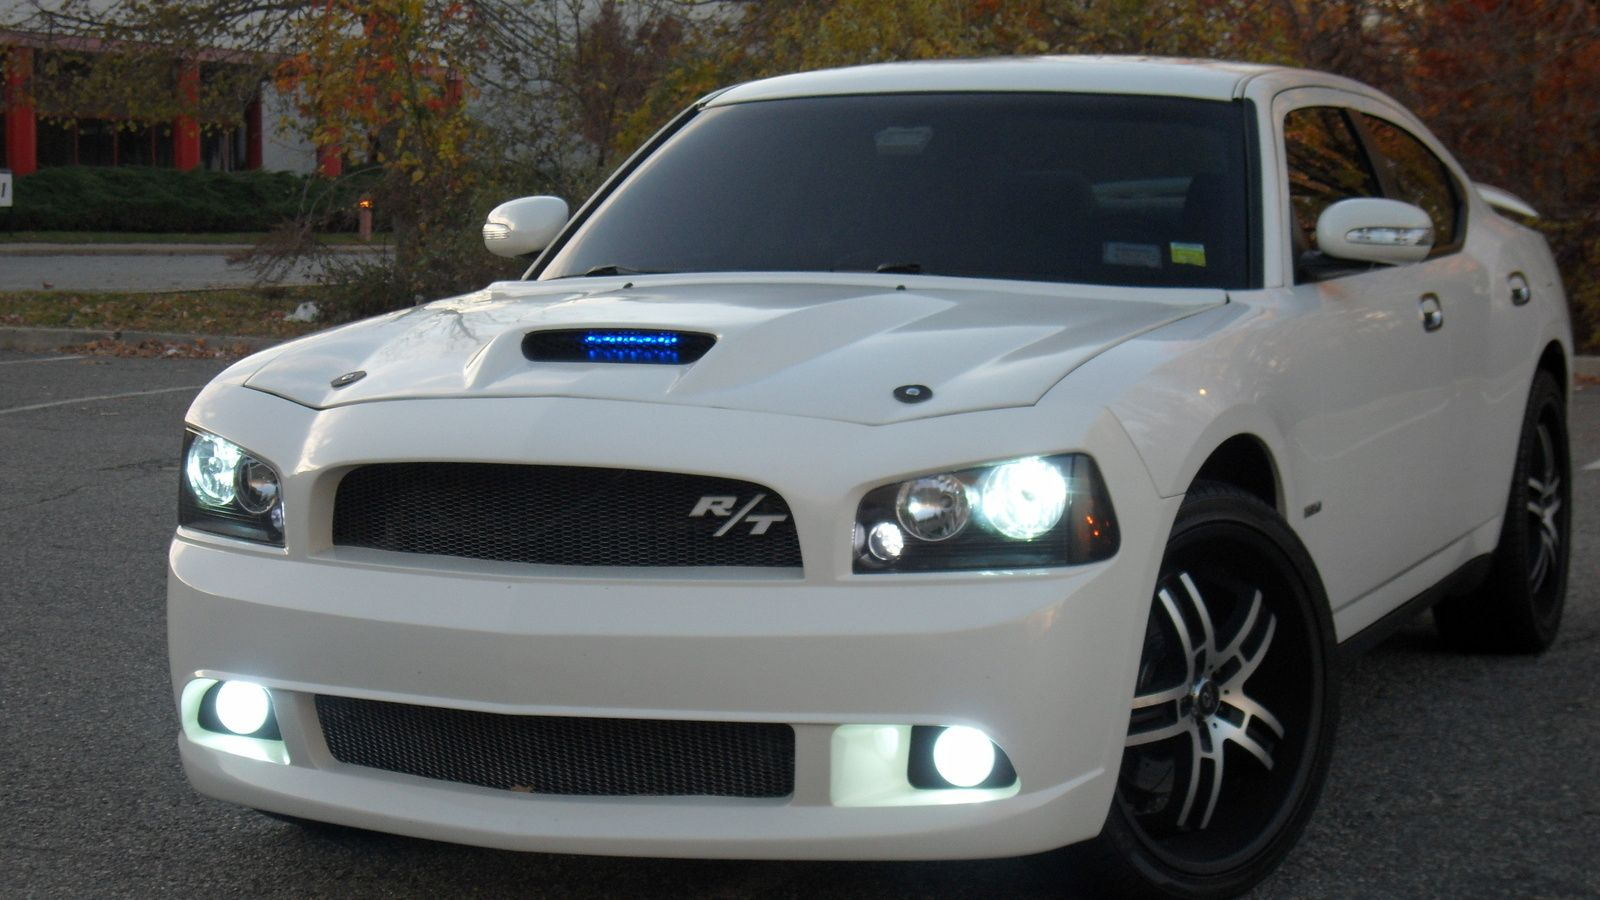 2007 Dodge Charger Pictures Cargurus Dodge Charger Dodge Dodge Charger Rt